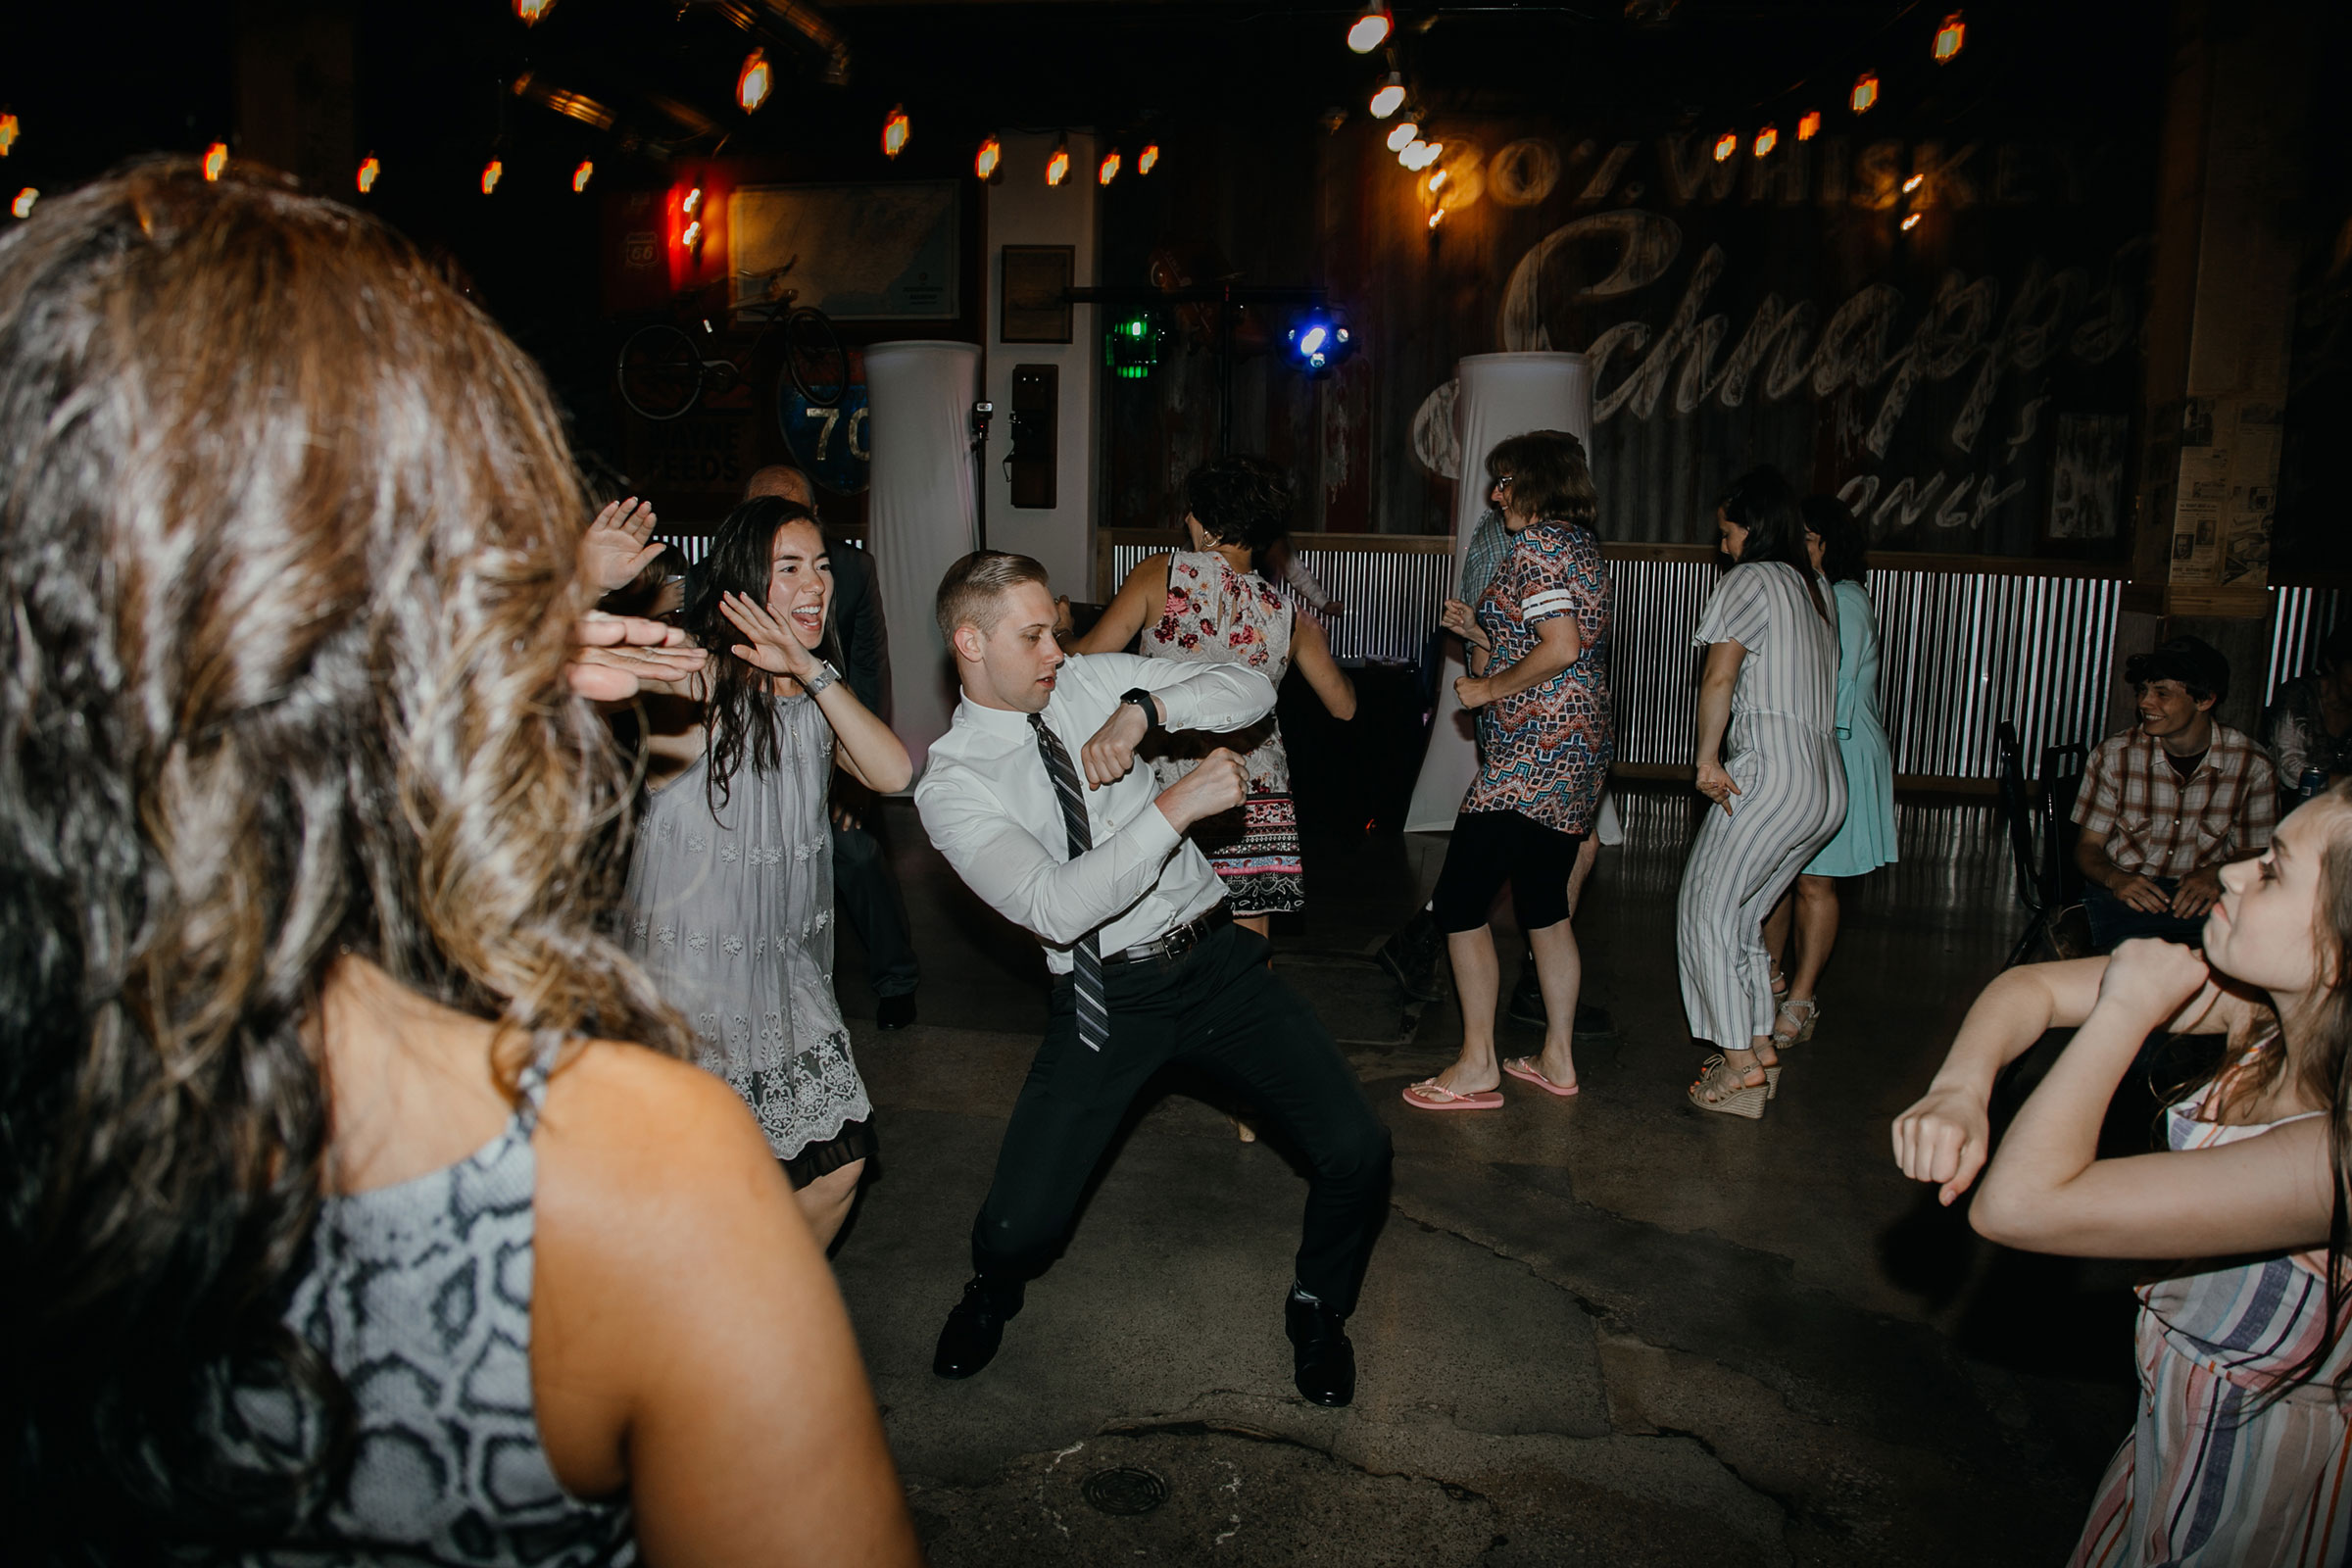 guests-dancing-on-dance-floor-at-reception-decades-event-center-building-desmoines-iowa-raelyn-ramey-photography..jpg